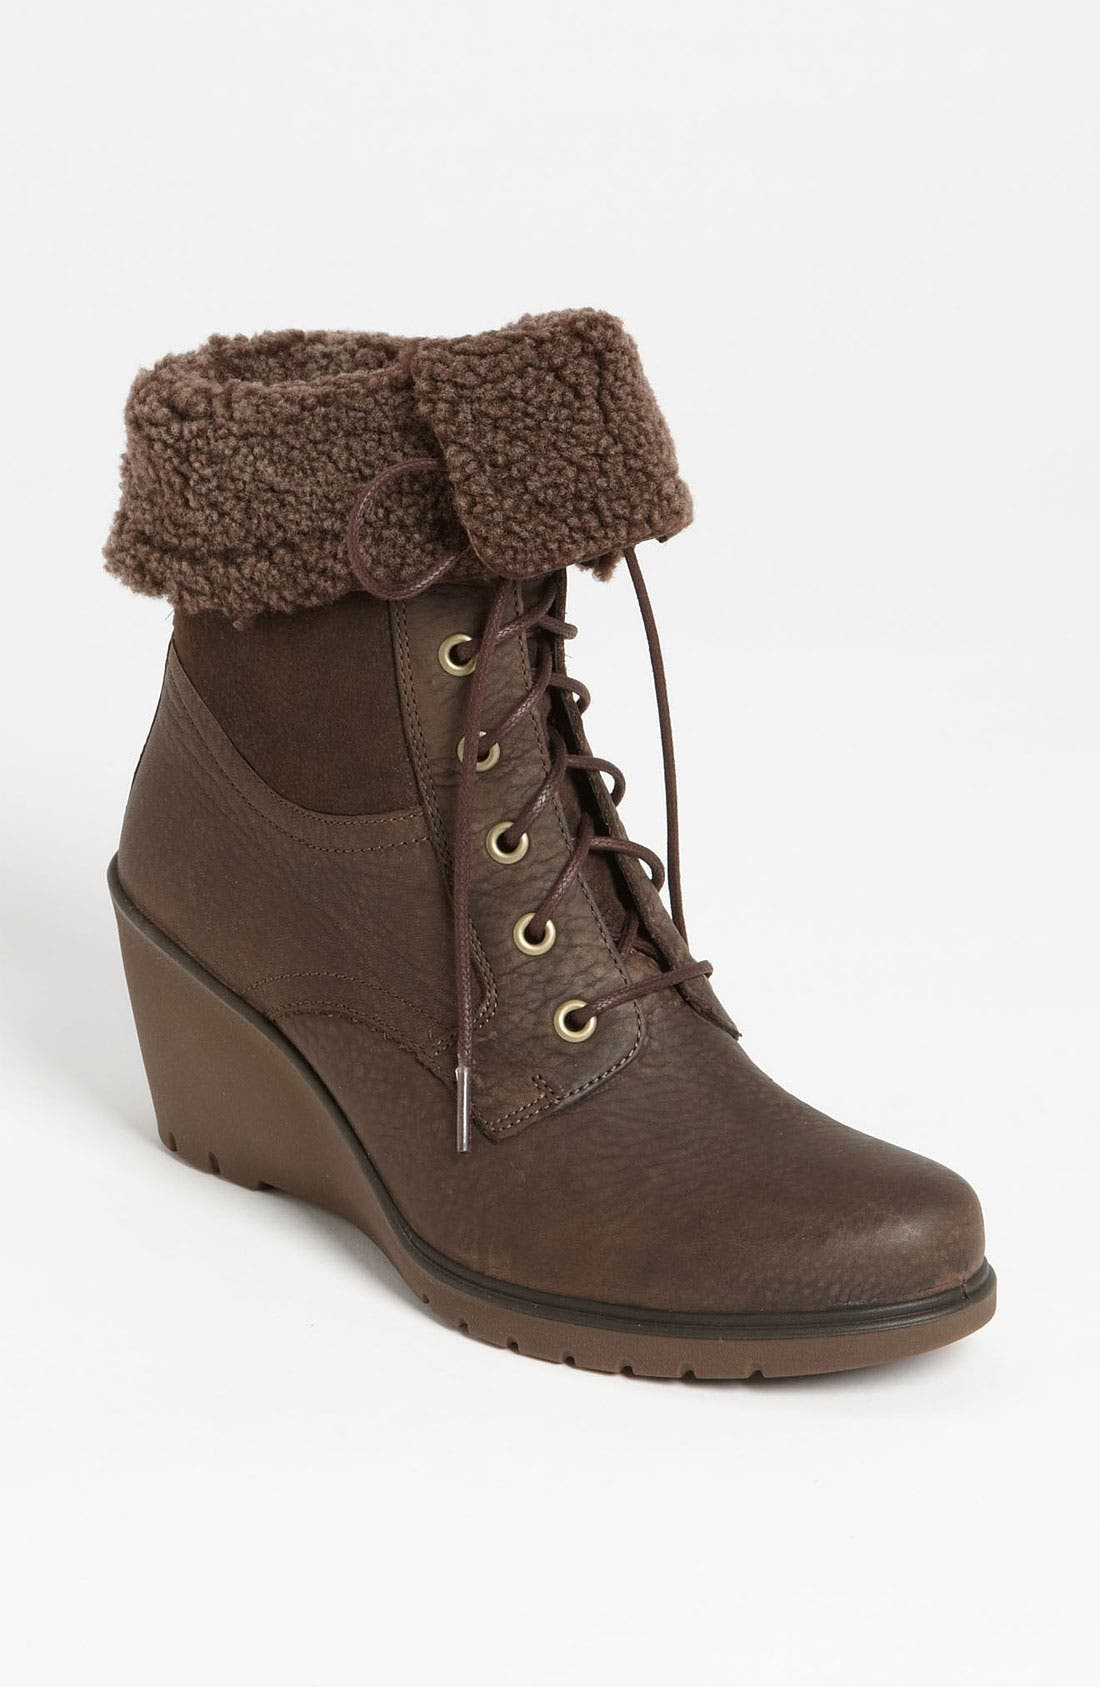 Alternate Image 1 Selected - ECCO 'Adora' Boot